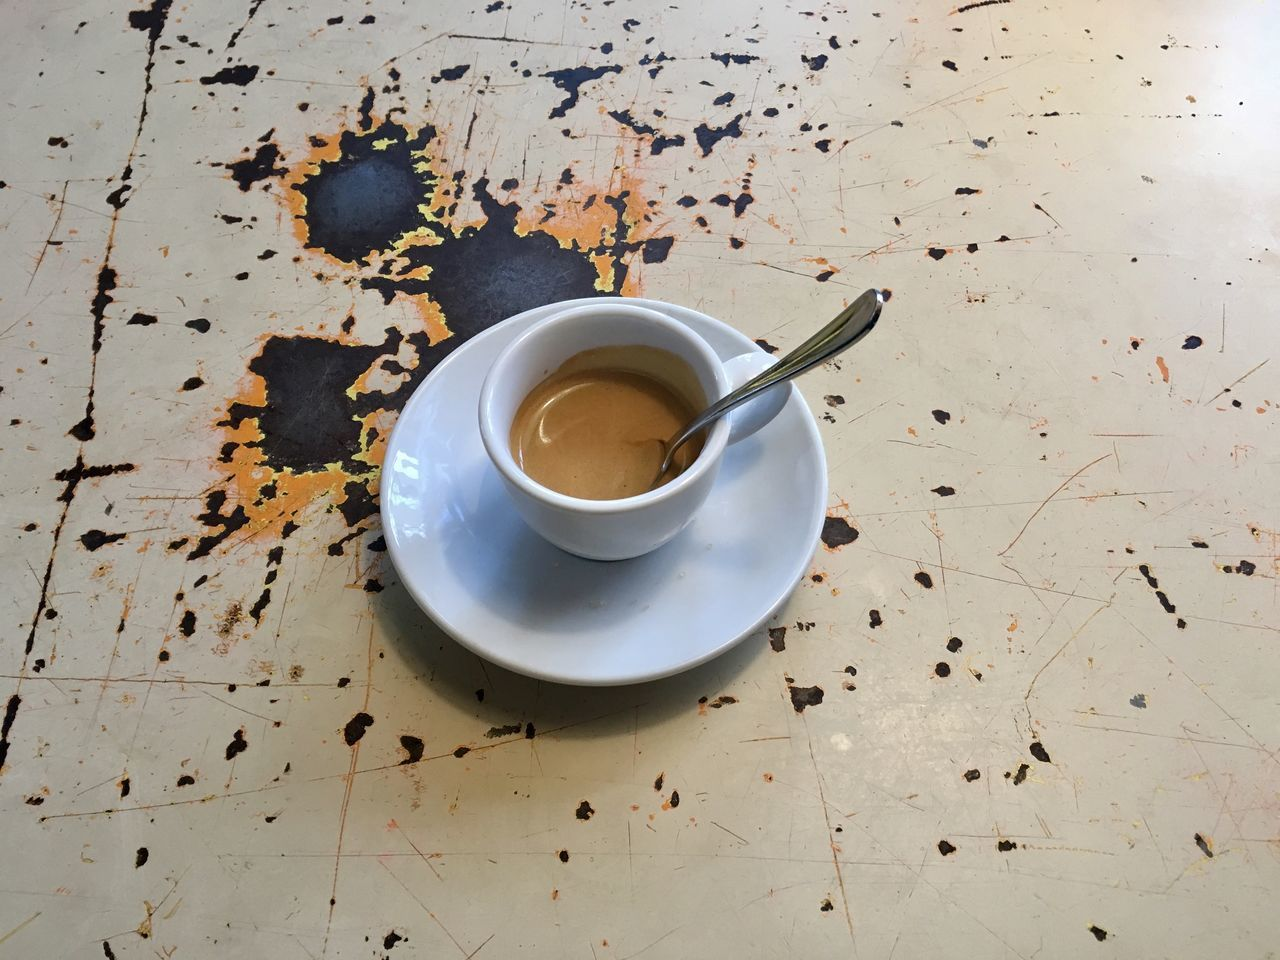 coffee cup, food and drink, refreshment, saucer, drink, cup, coffee - drink, table, leftovers, indoors, no people, freshness, close-up, day